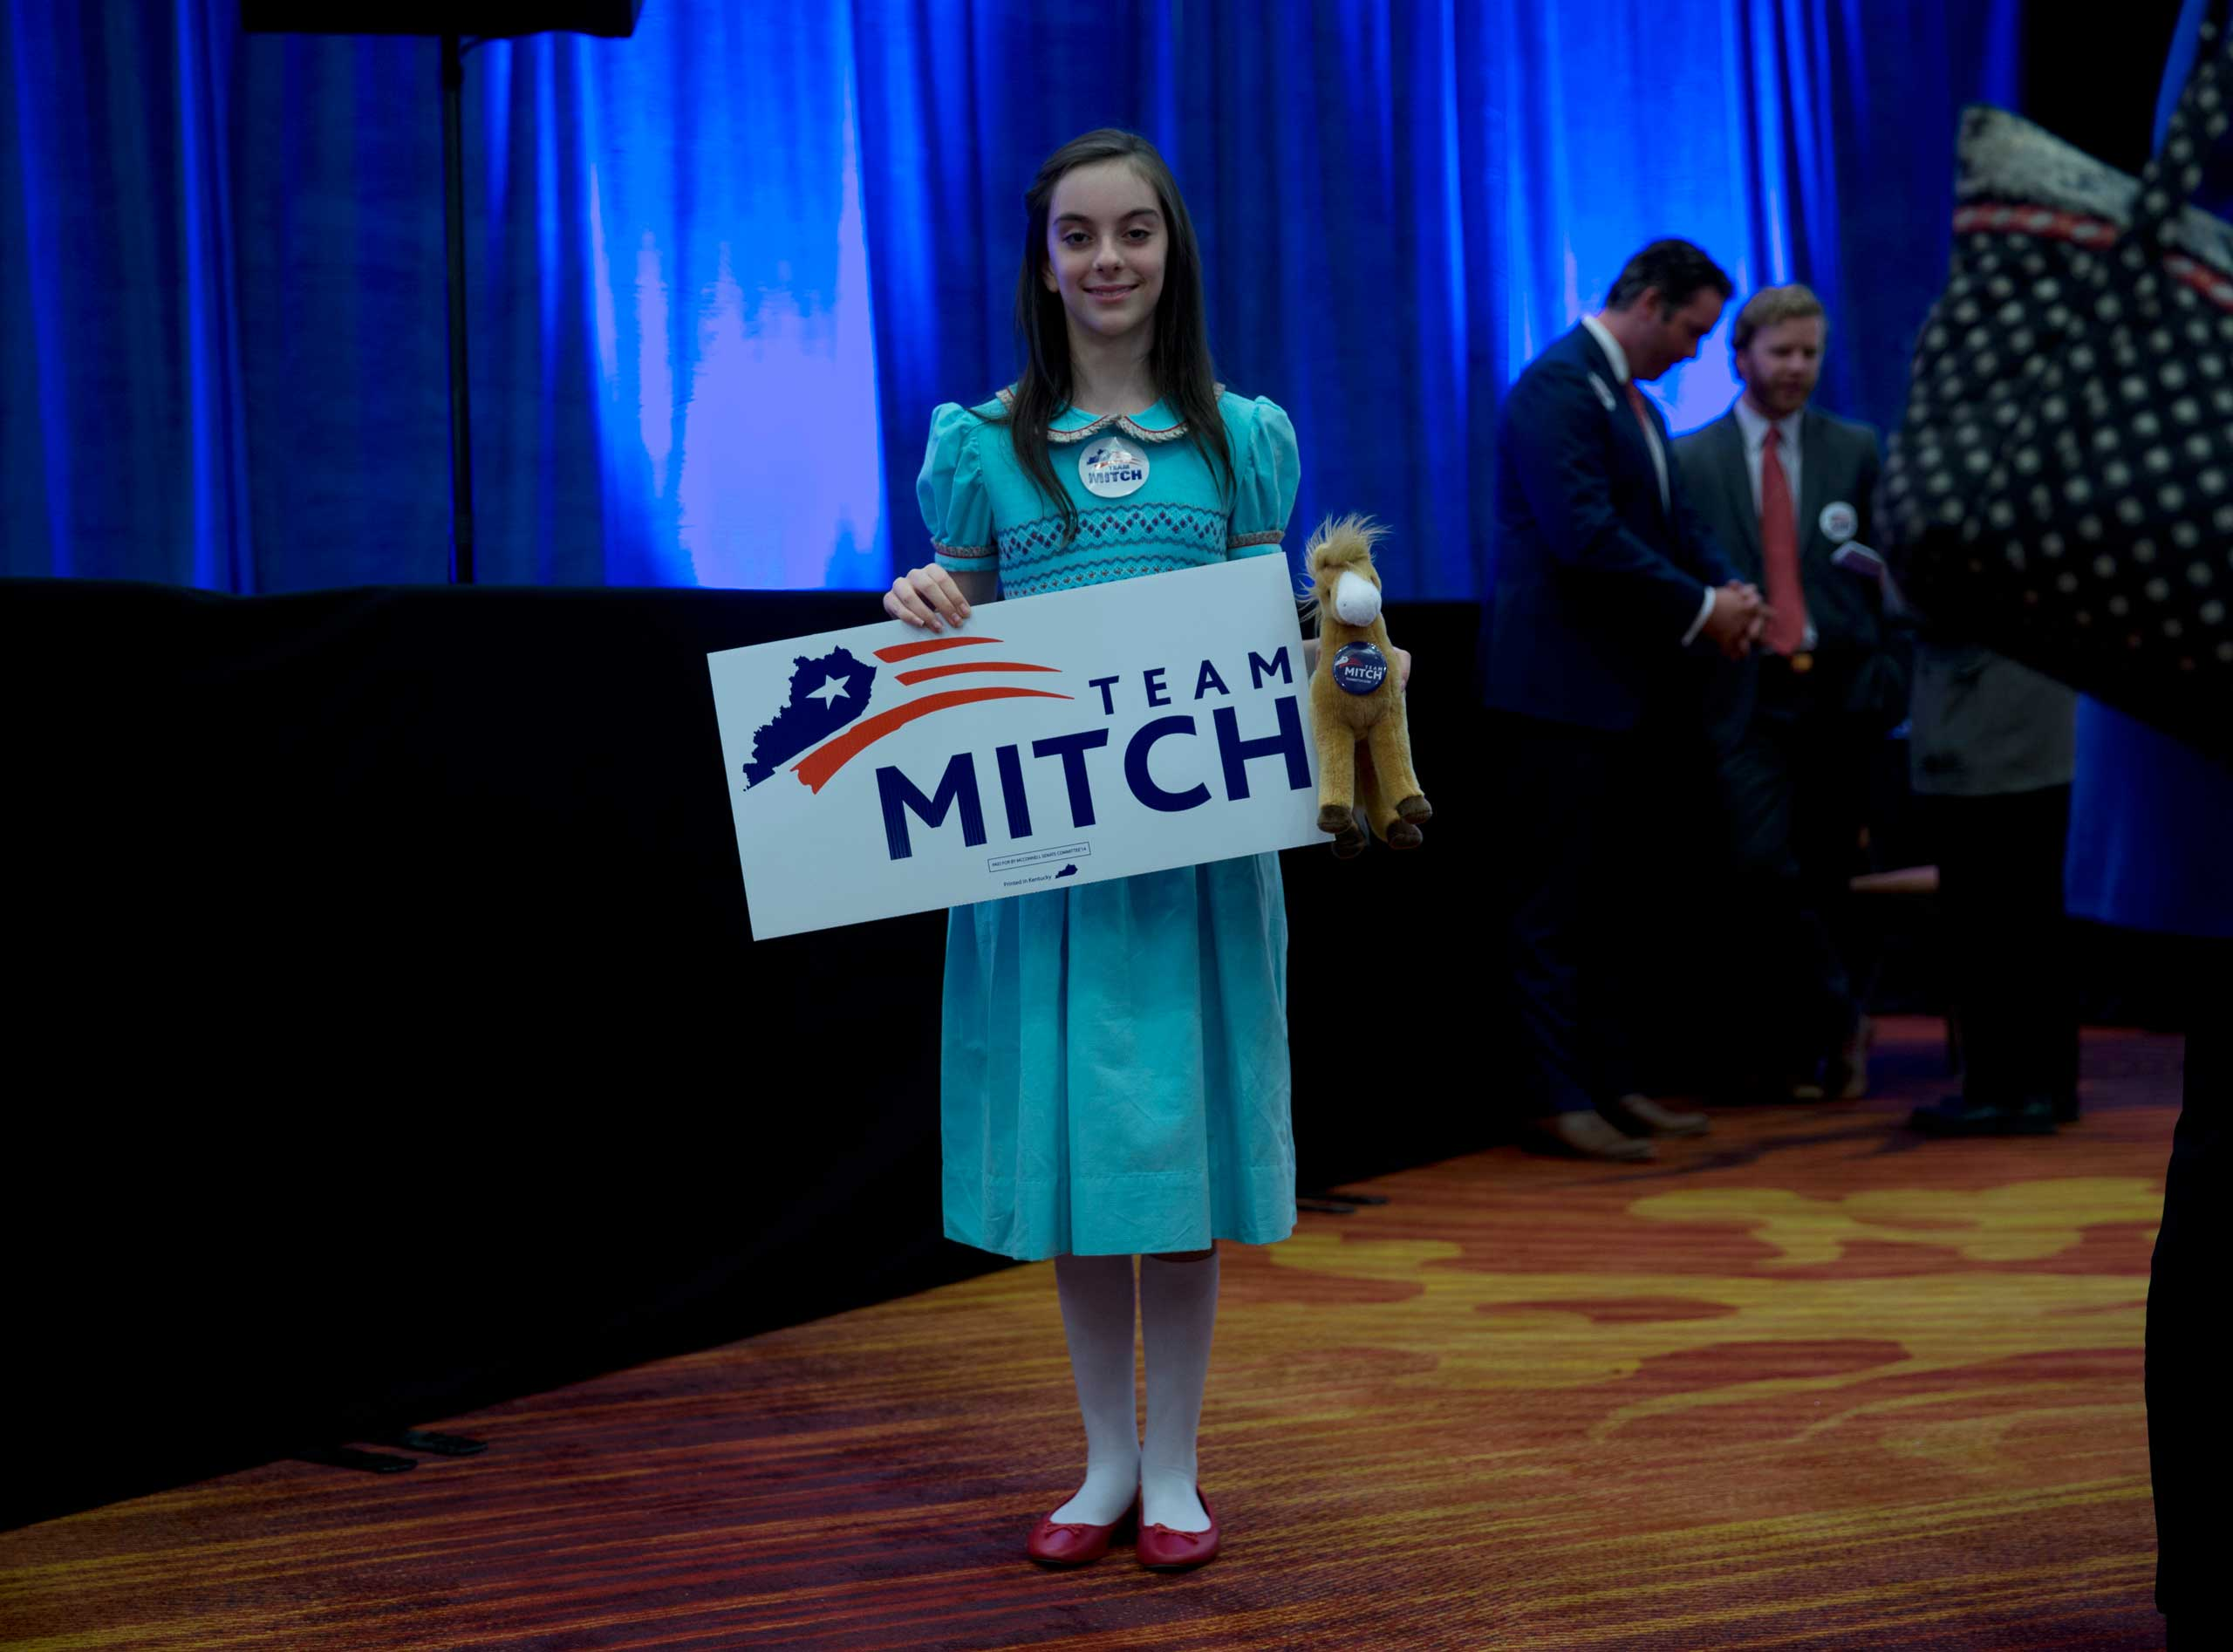 A supporter of incumbent Sen. Mitch McConnell's win at the Louisville Marriott East Hotel in Louisville, Ky. on Nov. 4, 2014.